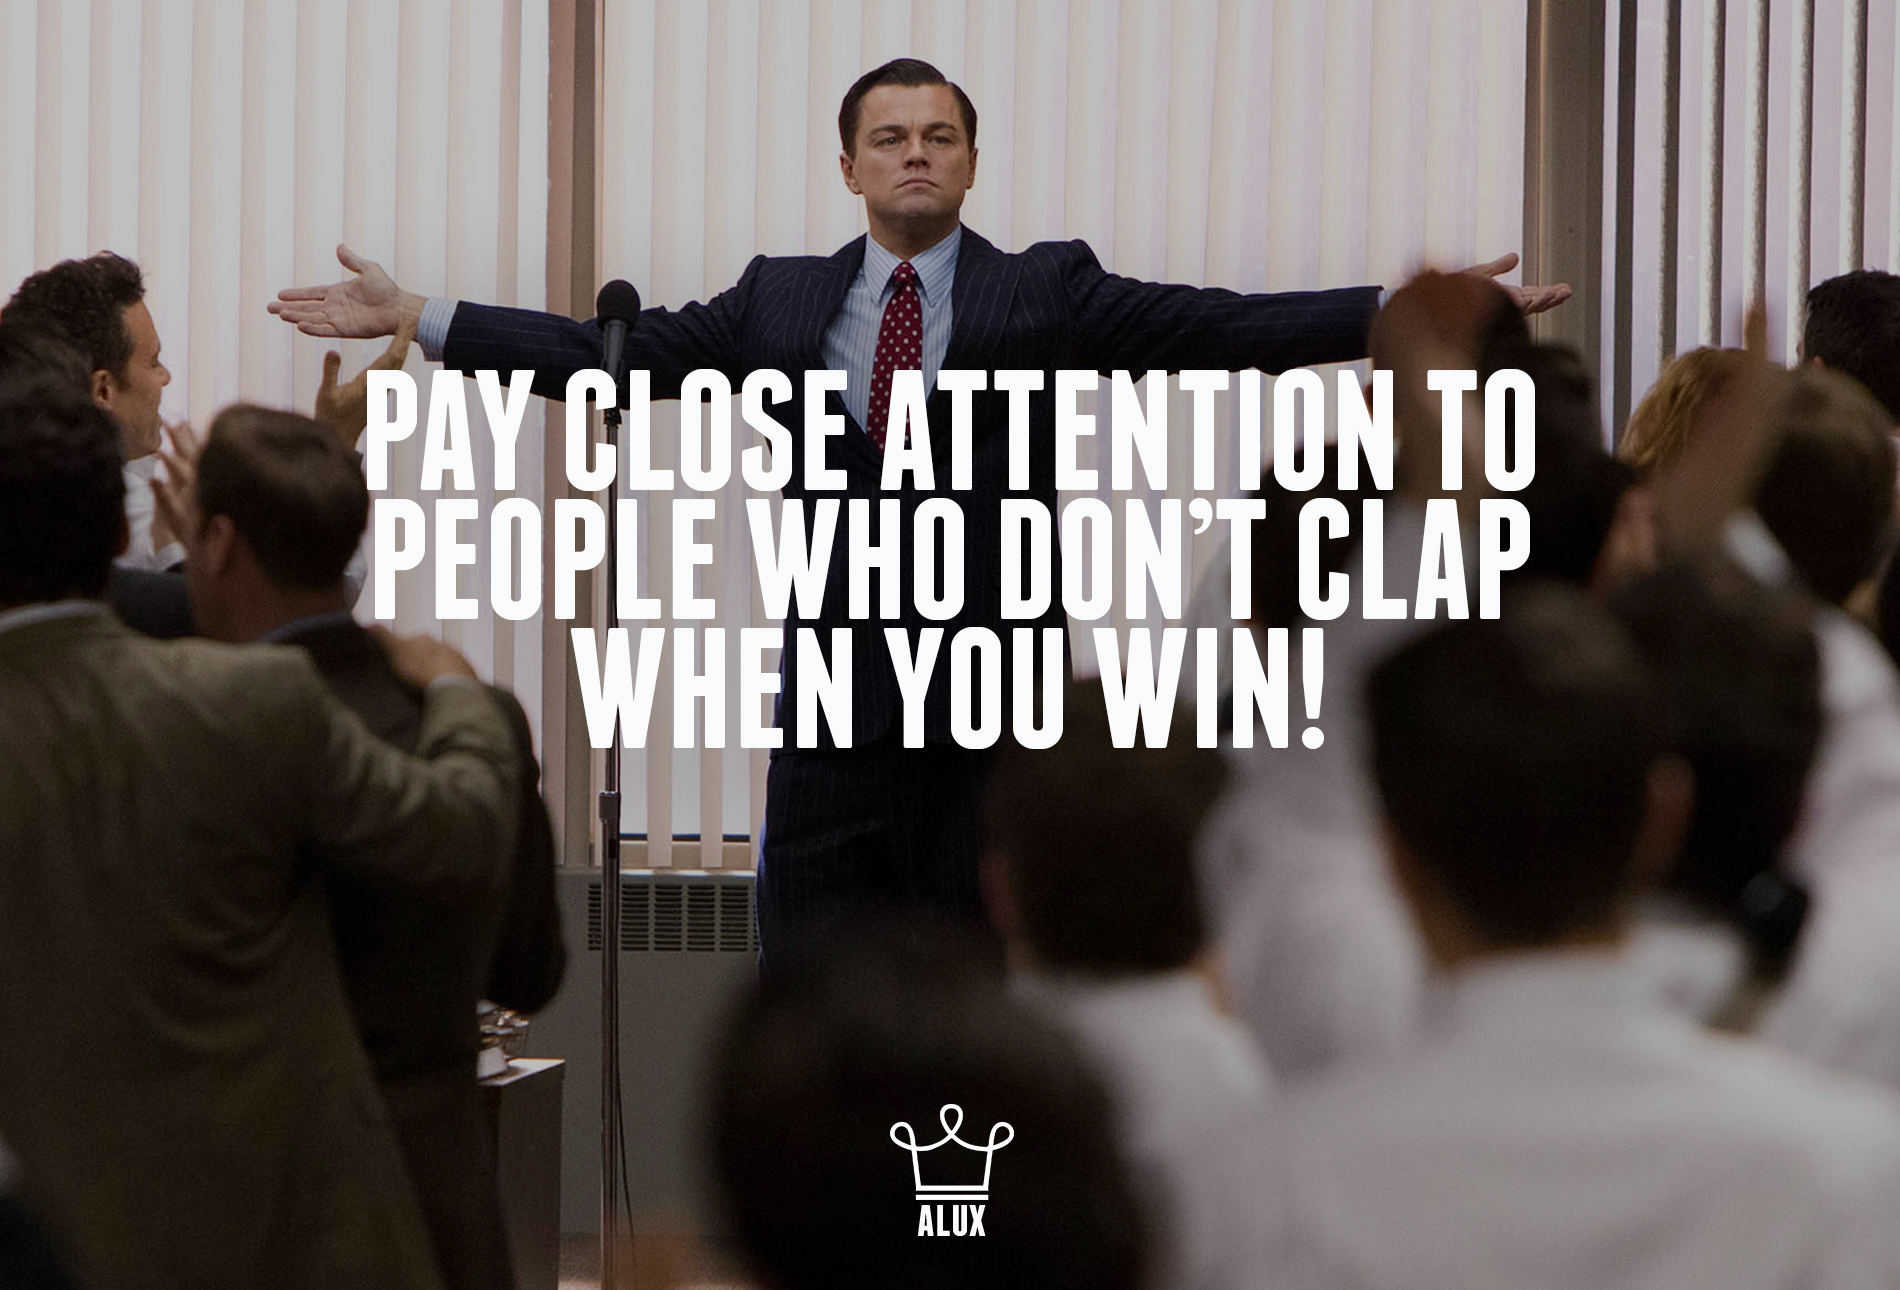 Pay close attention to people who don't clap when you win!